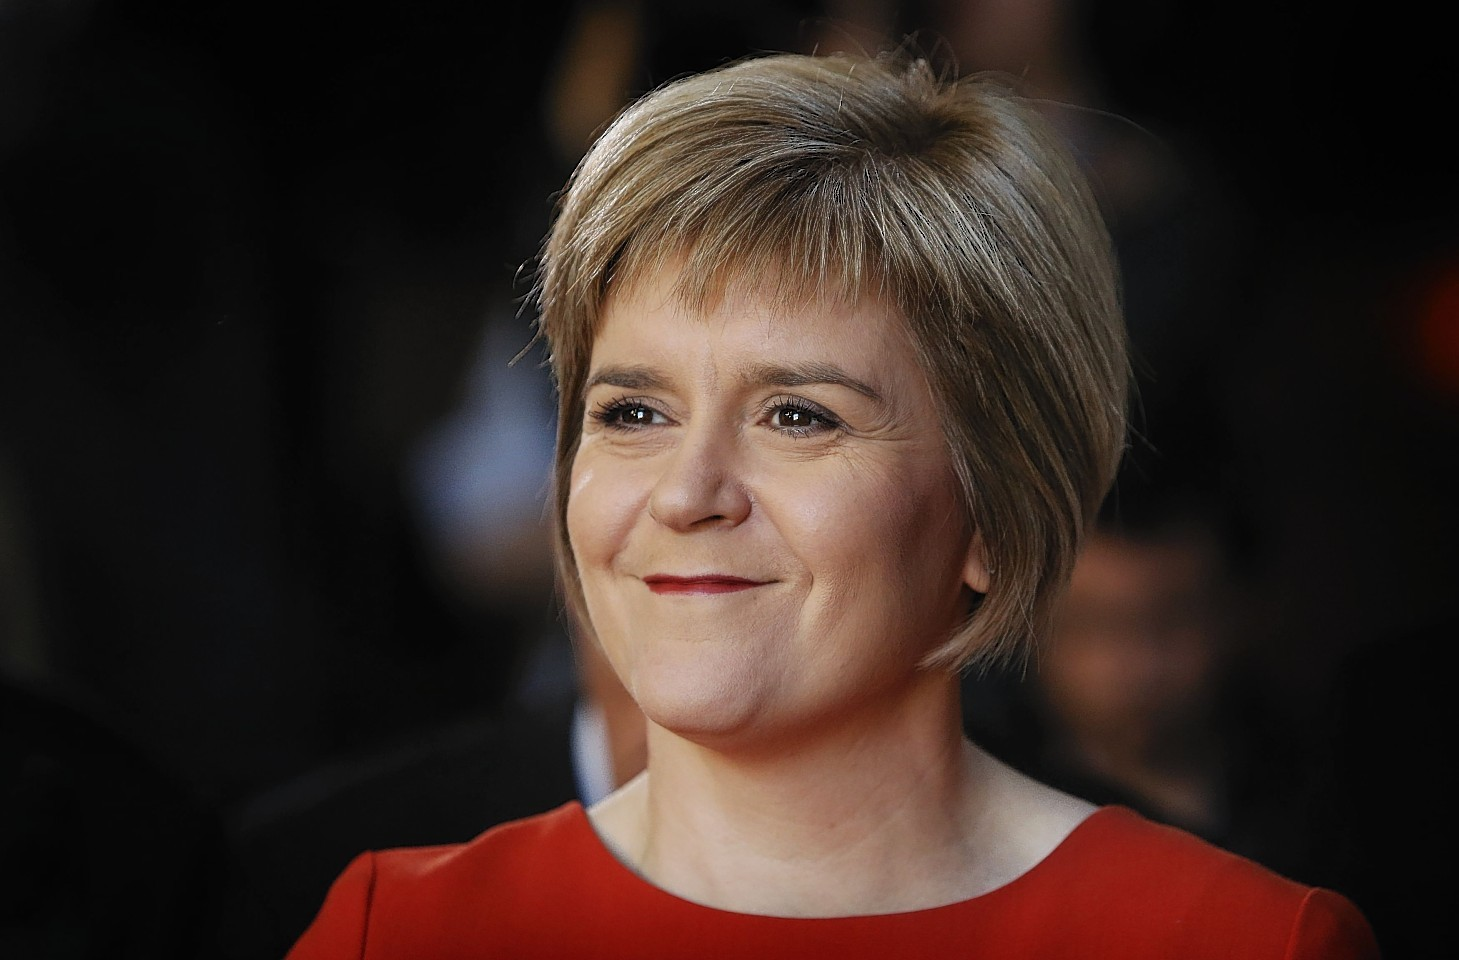 Nicola Sturgeon has promised an accessible government